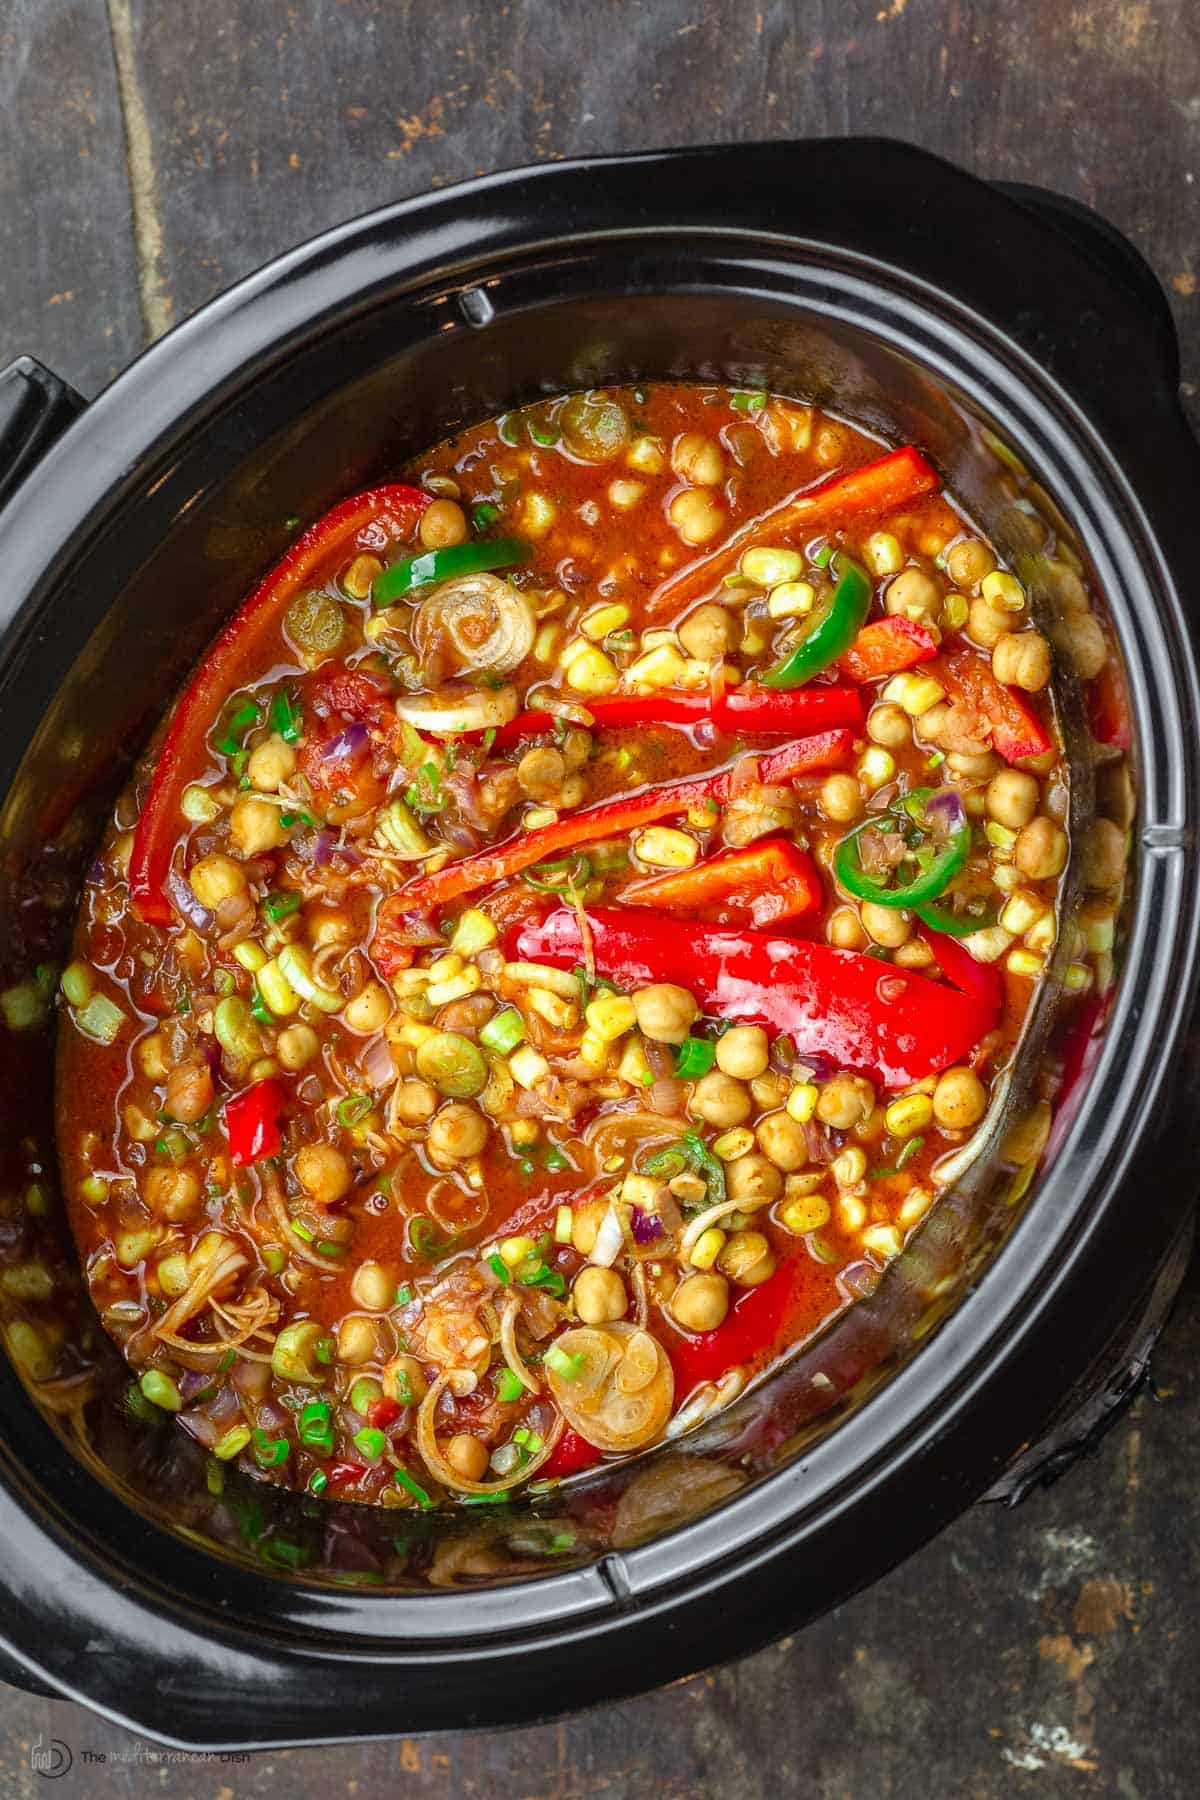 Chickpea chili in a slow cooker